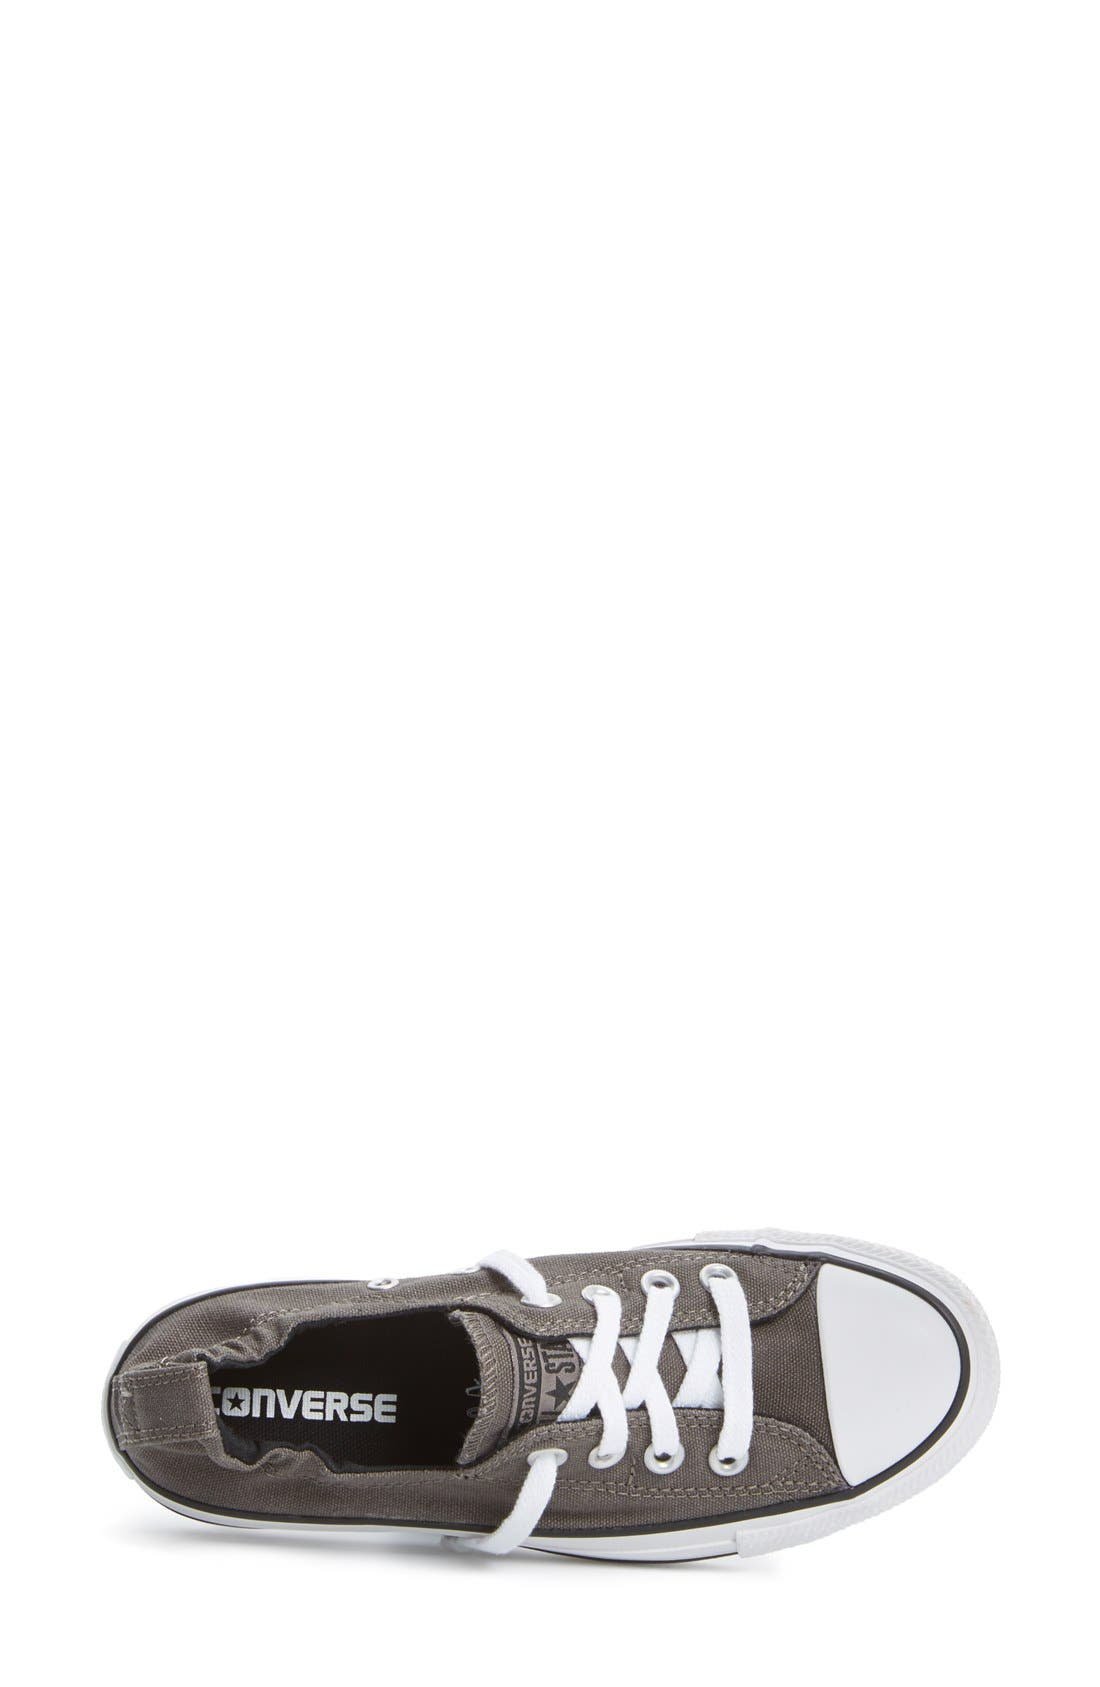 CONVERSE, Chuck Taylor<sup>®</sup> All Star<sup>®</sup> Shoreline Low Top Sneaker, Alternate thumbnail 3, color, 050